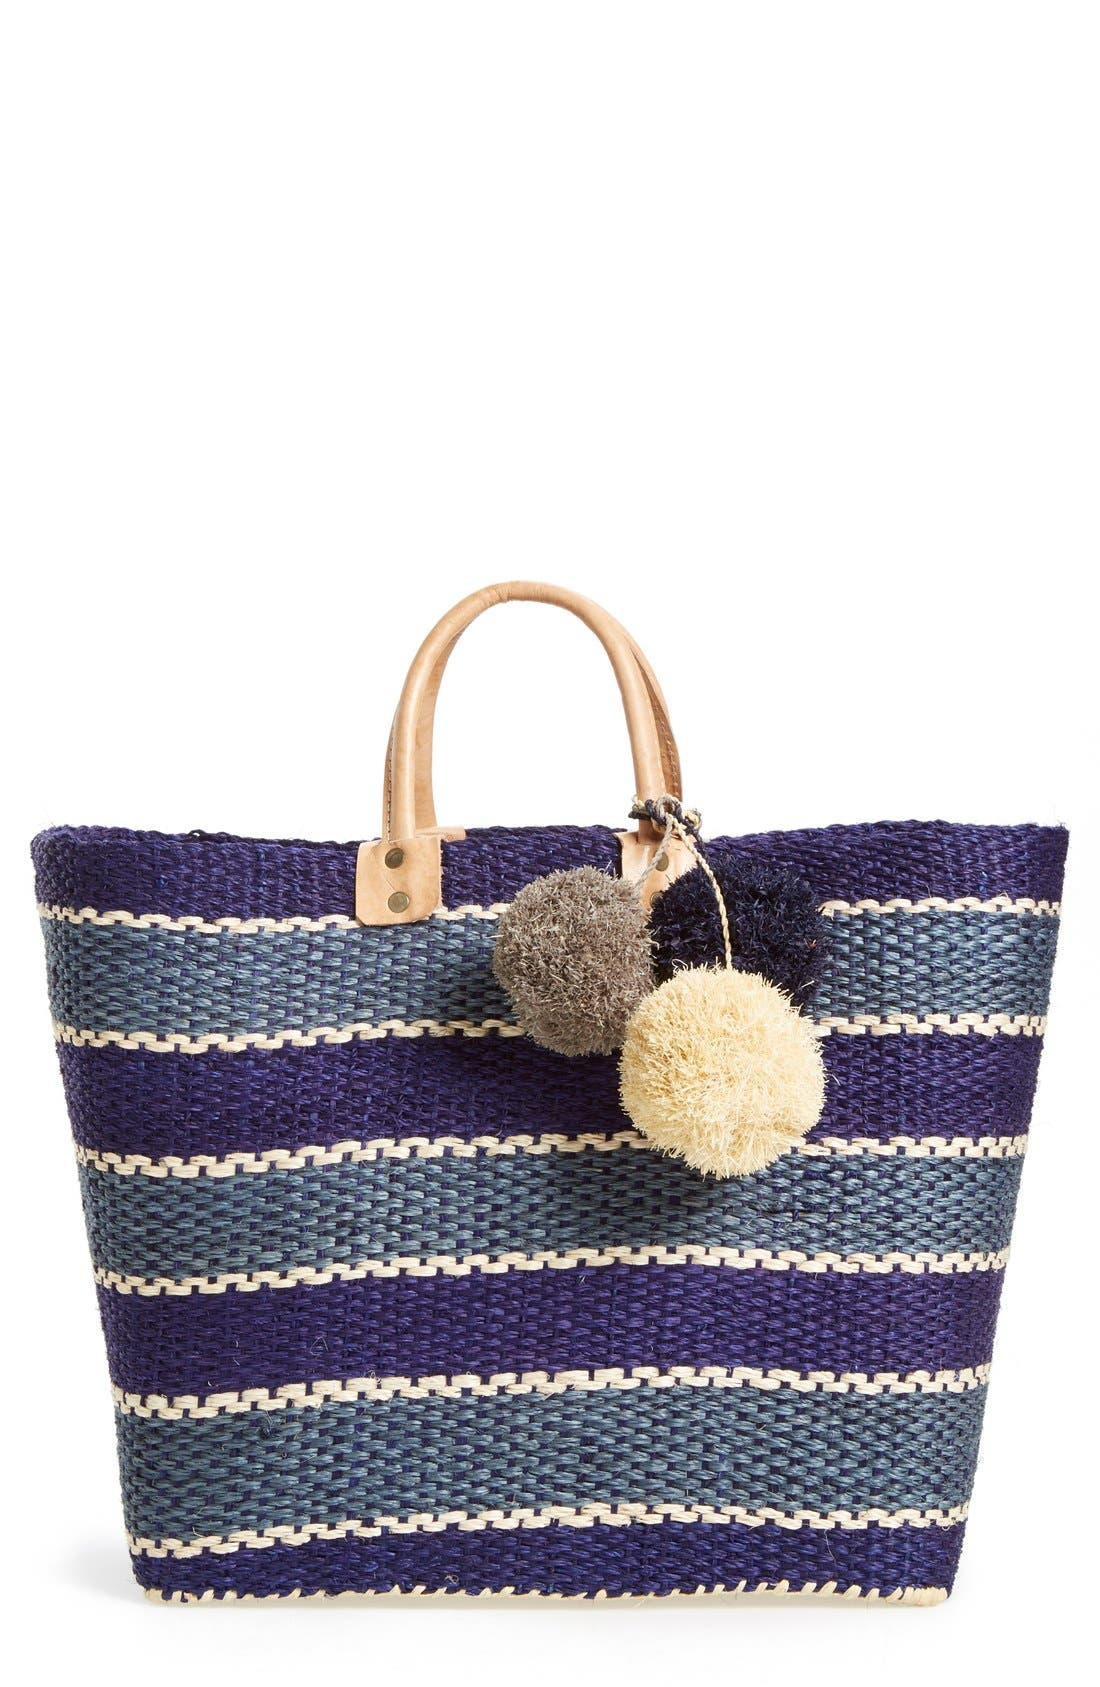 Main Image - Mar y Sol 'Capri' Woven Tote with Pom Charms